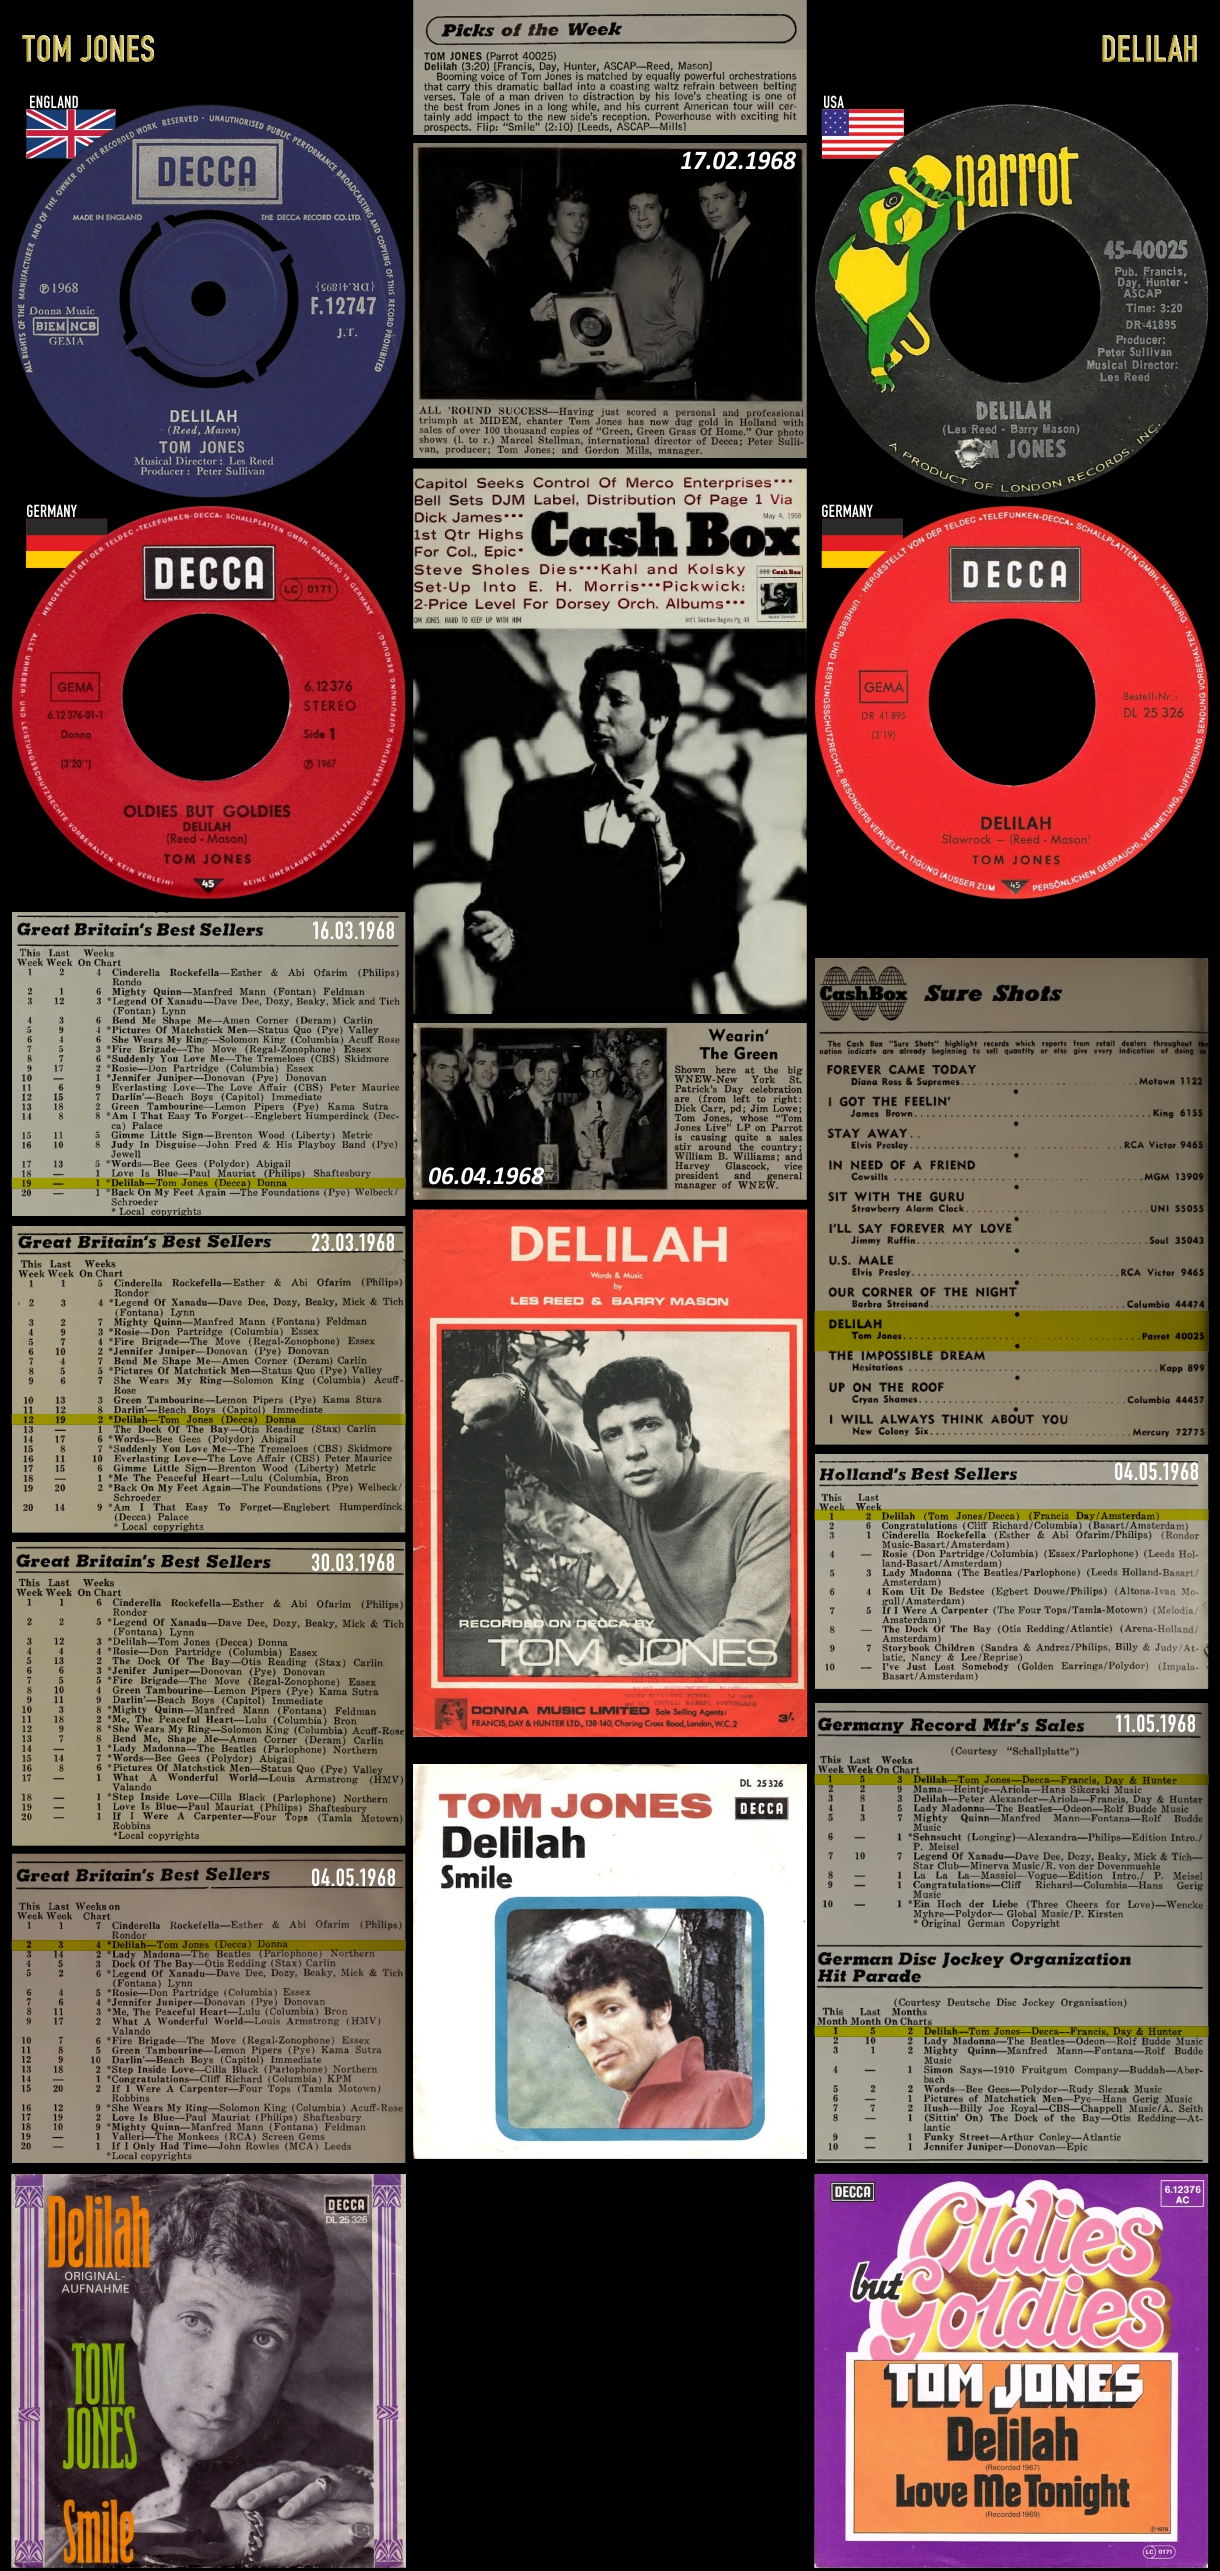 680316_Tom Jones_Delilah